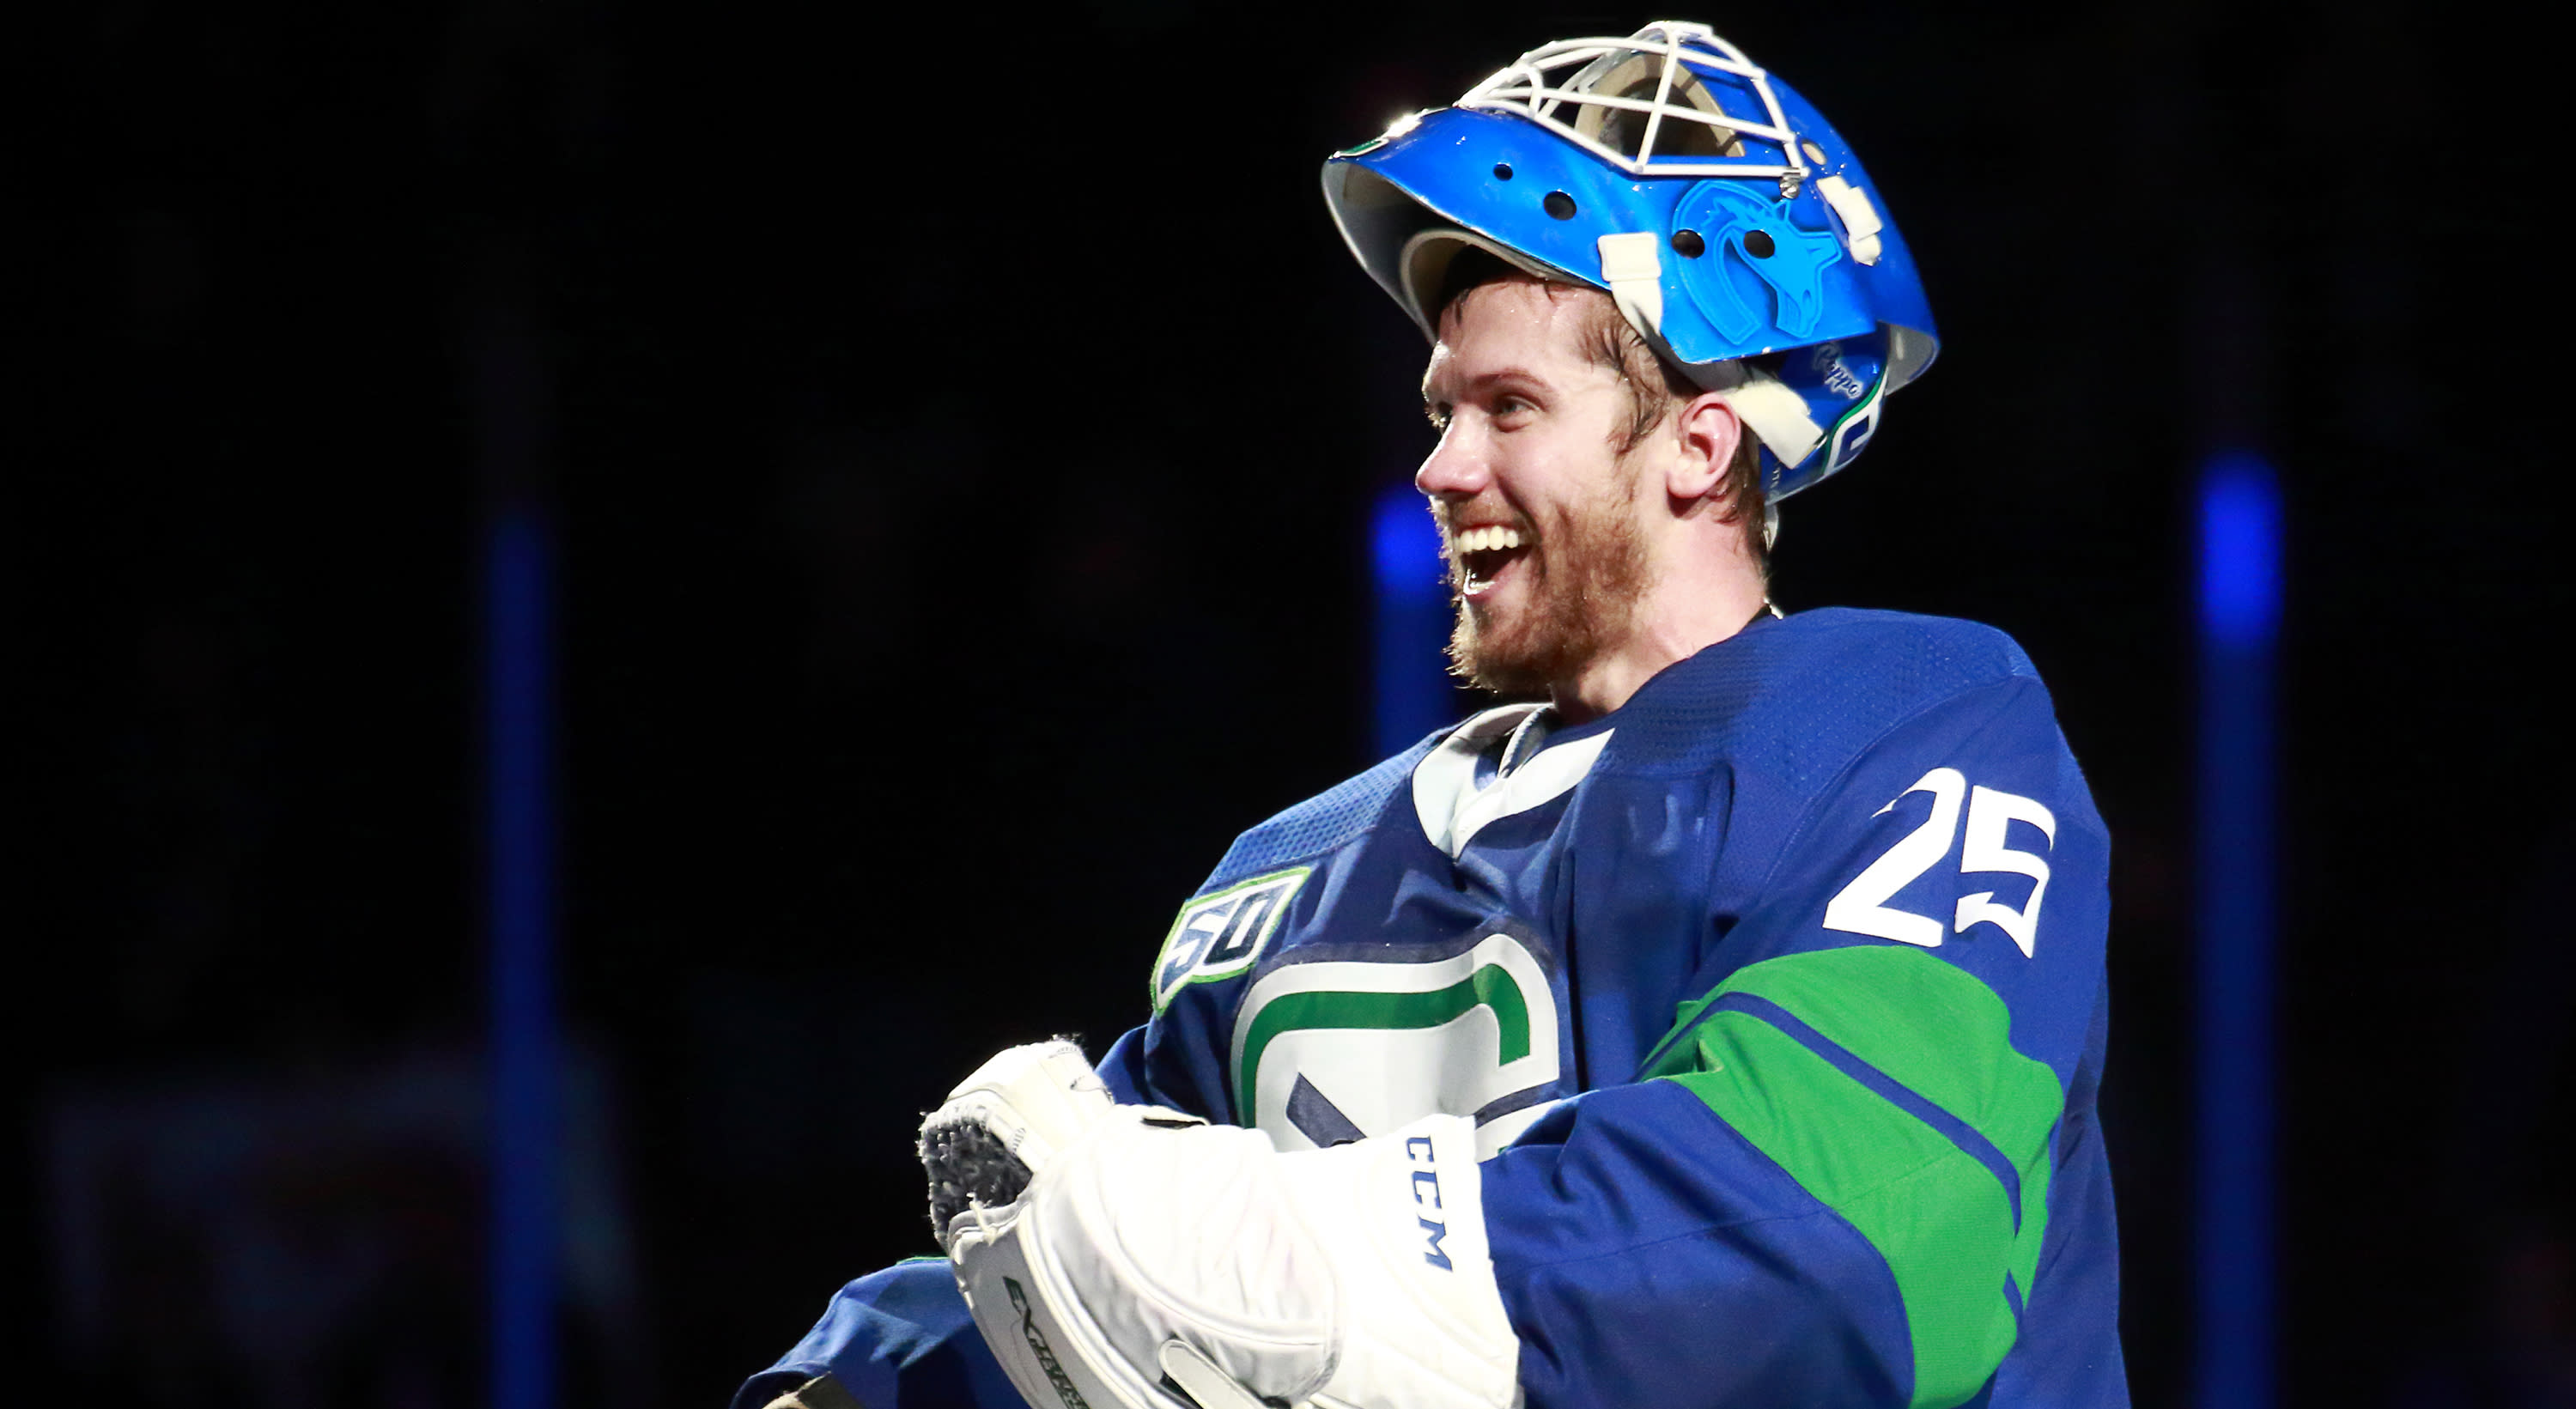 Canucks Markstrom To Replace Golden Knights Fleury At Nhl All Star Game